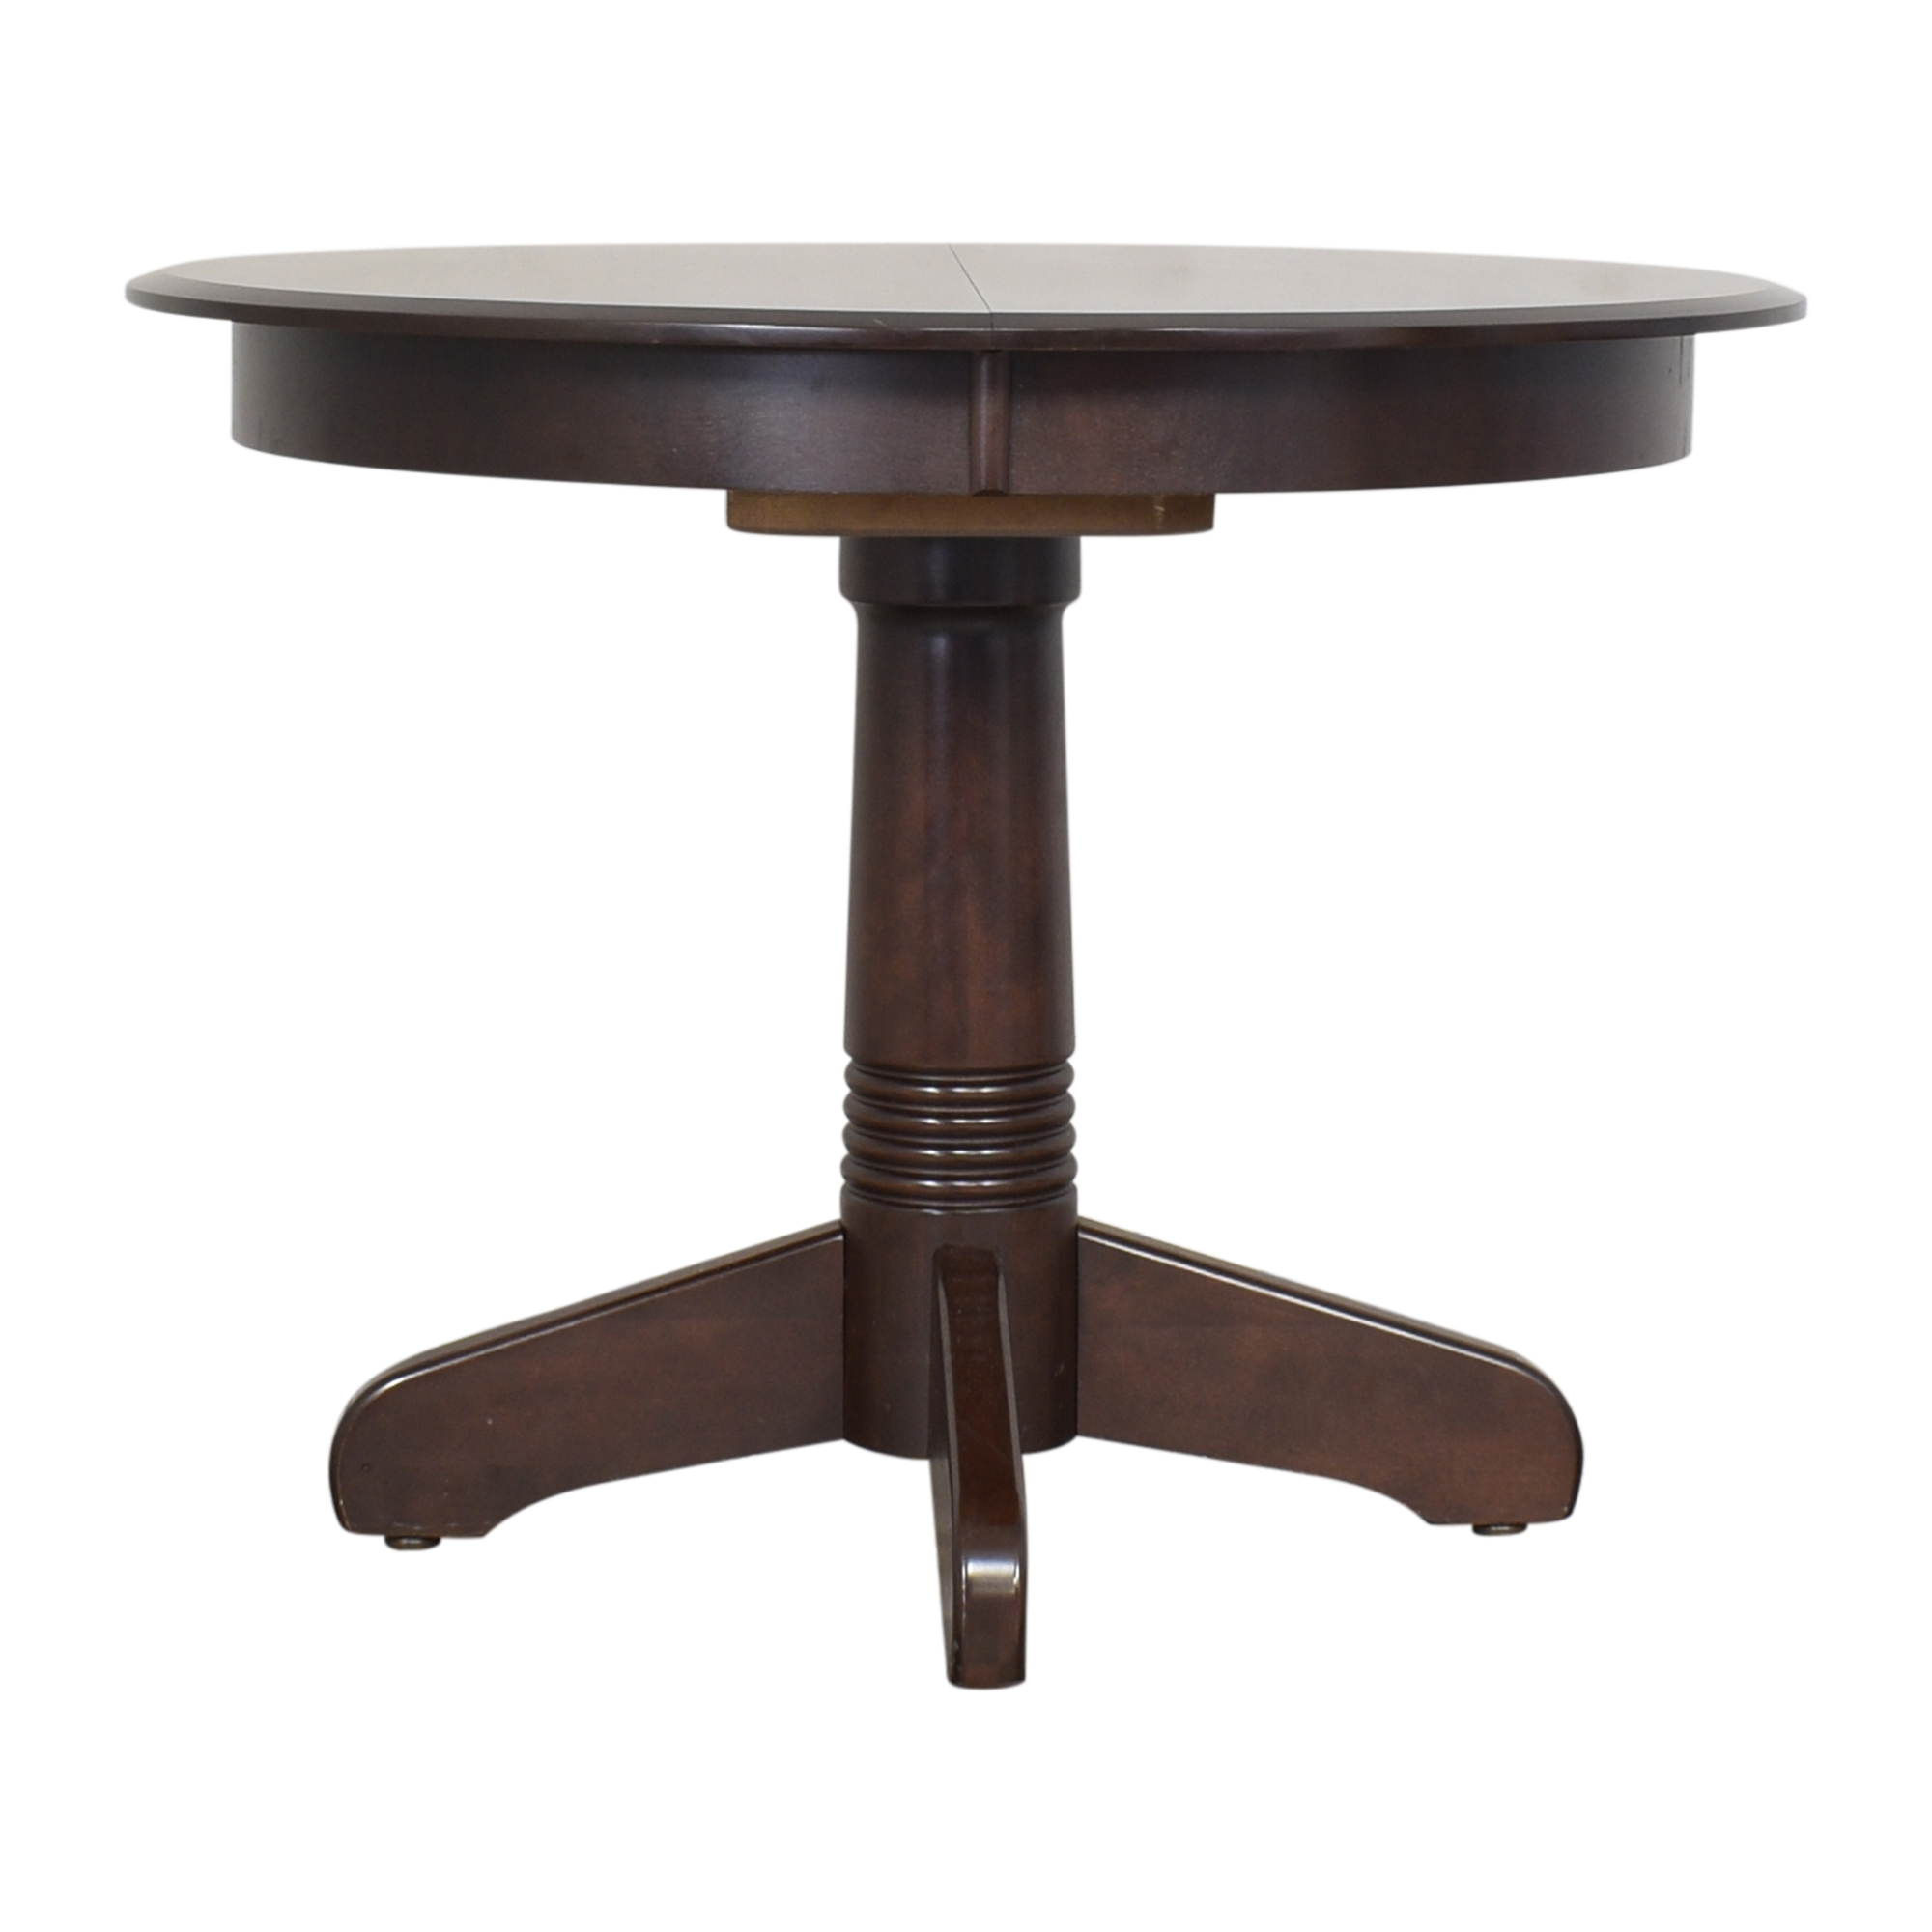 Thomasville Thomasville Round Extendable Dining Table dimensions